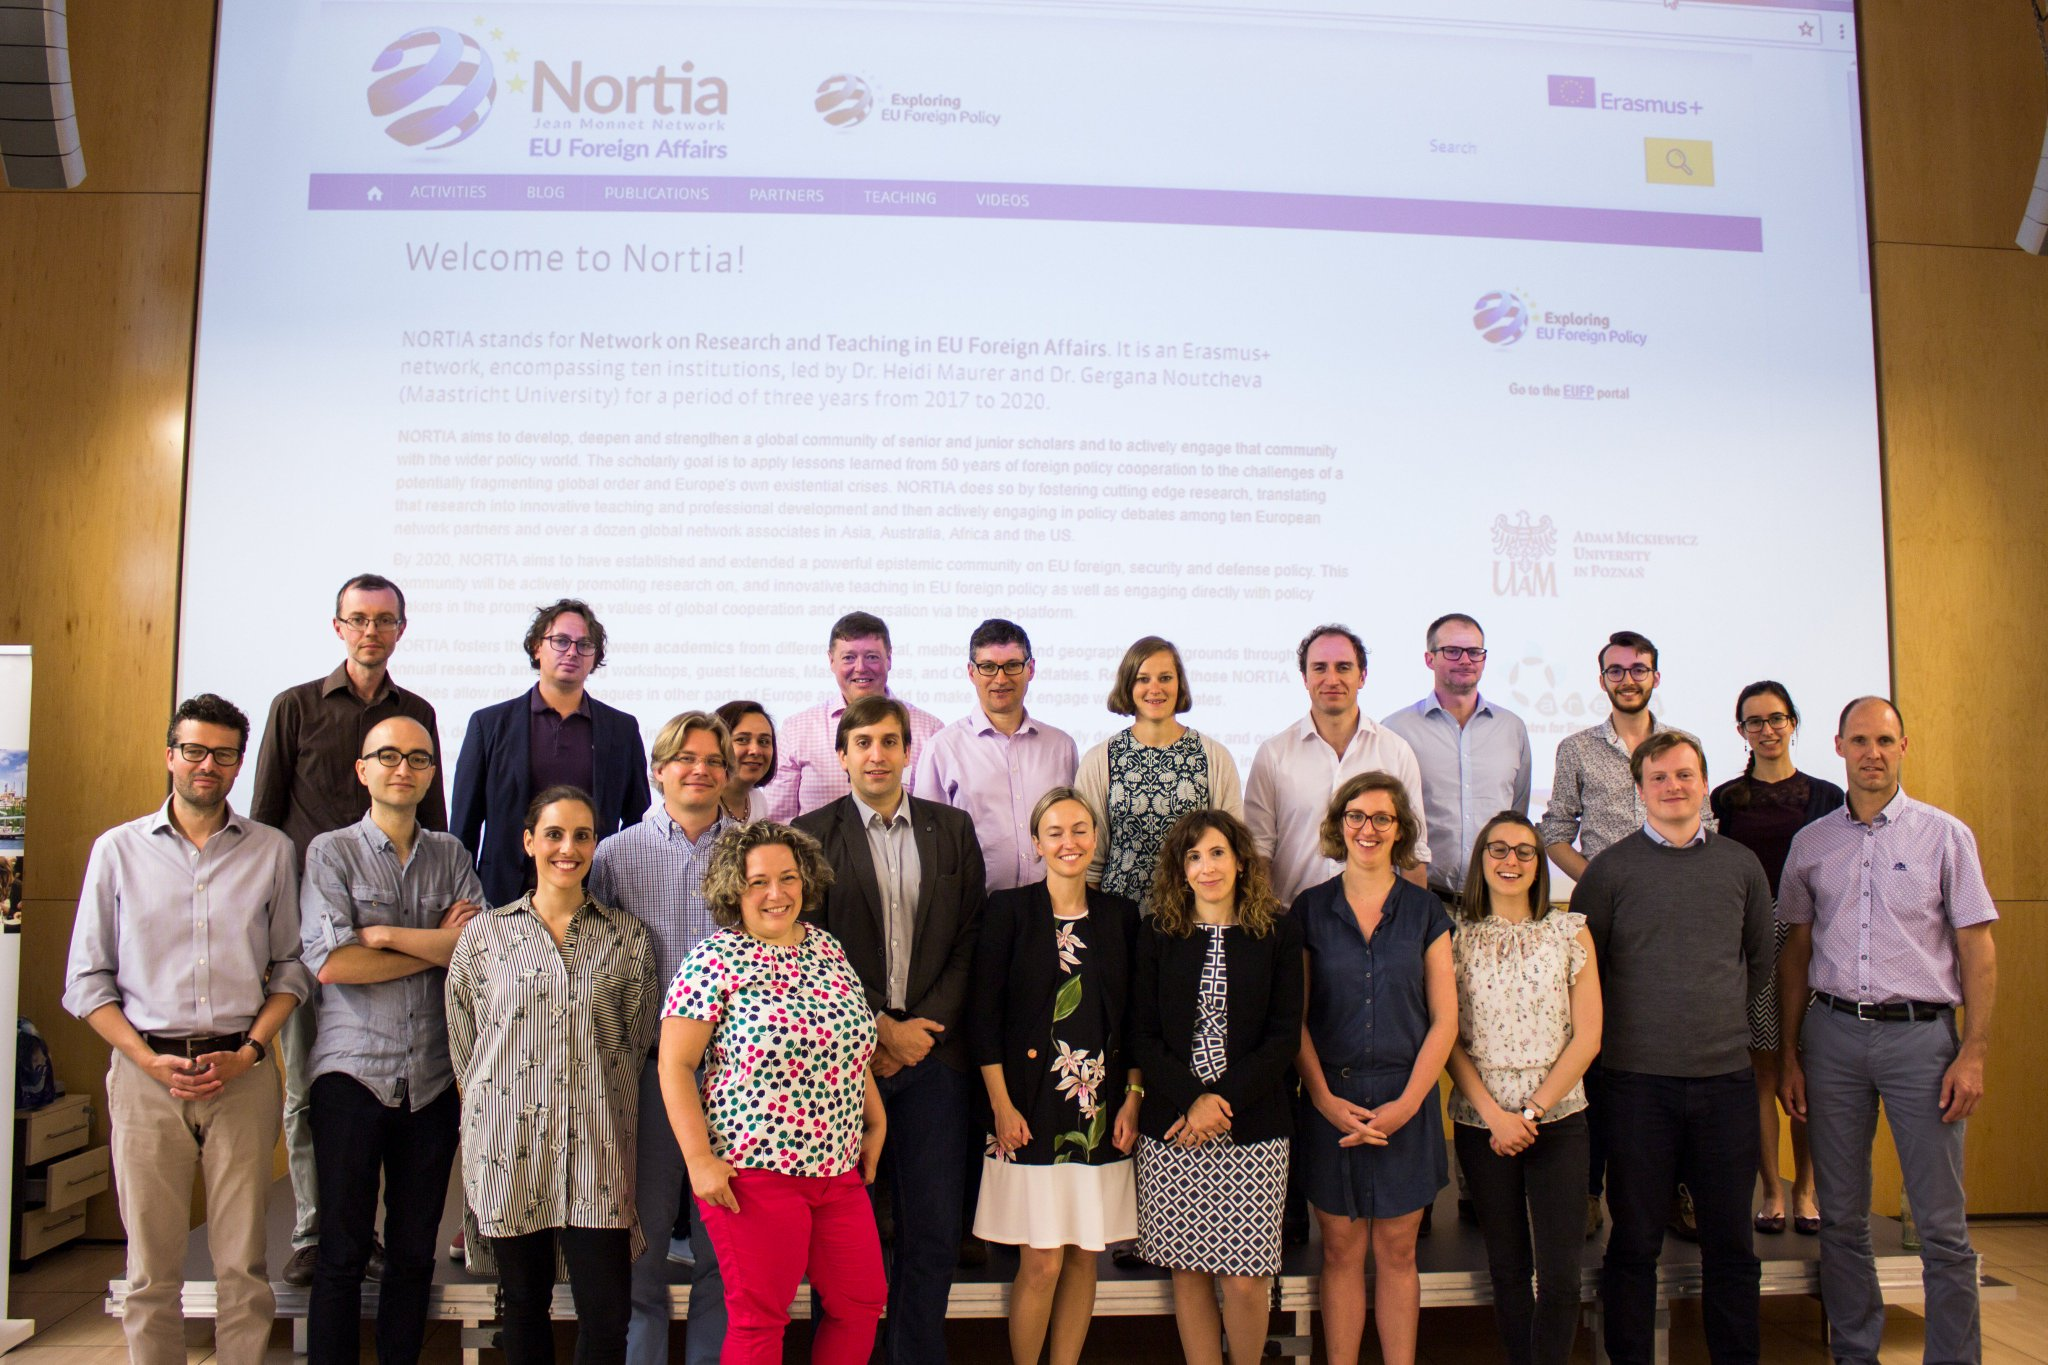 Meet the members of the Jean Monnet NORTIA Network